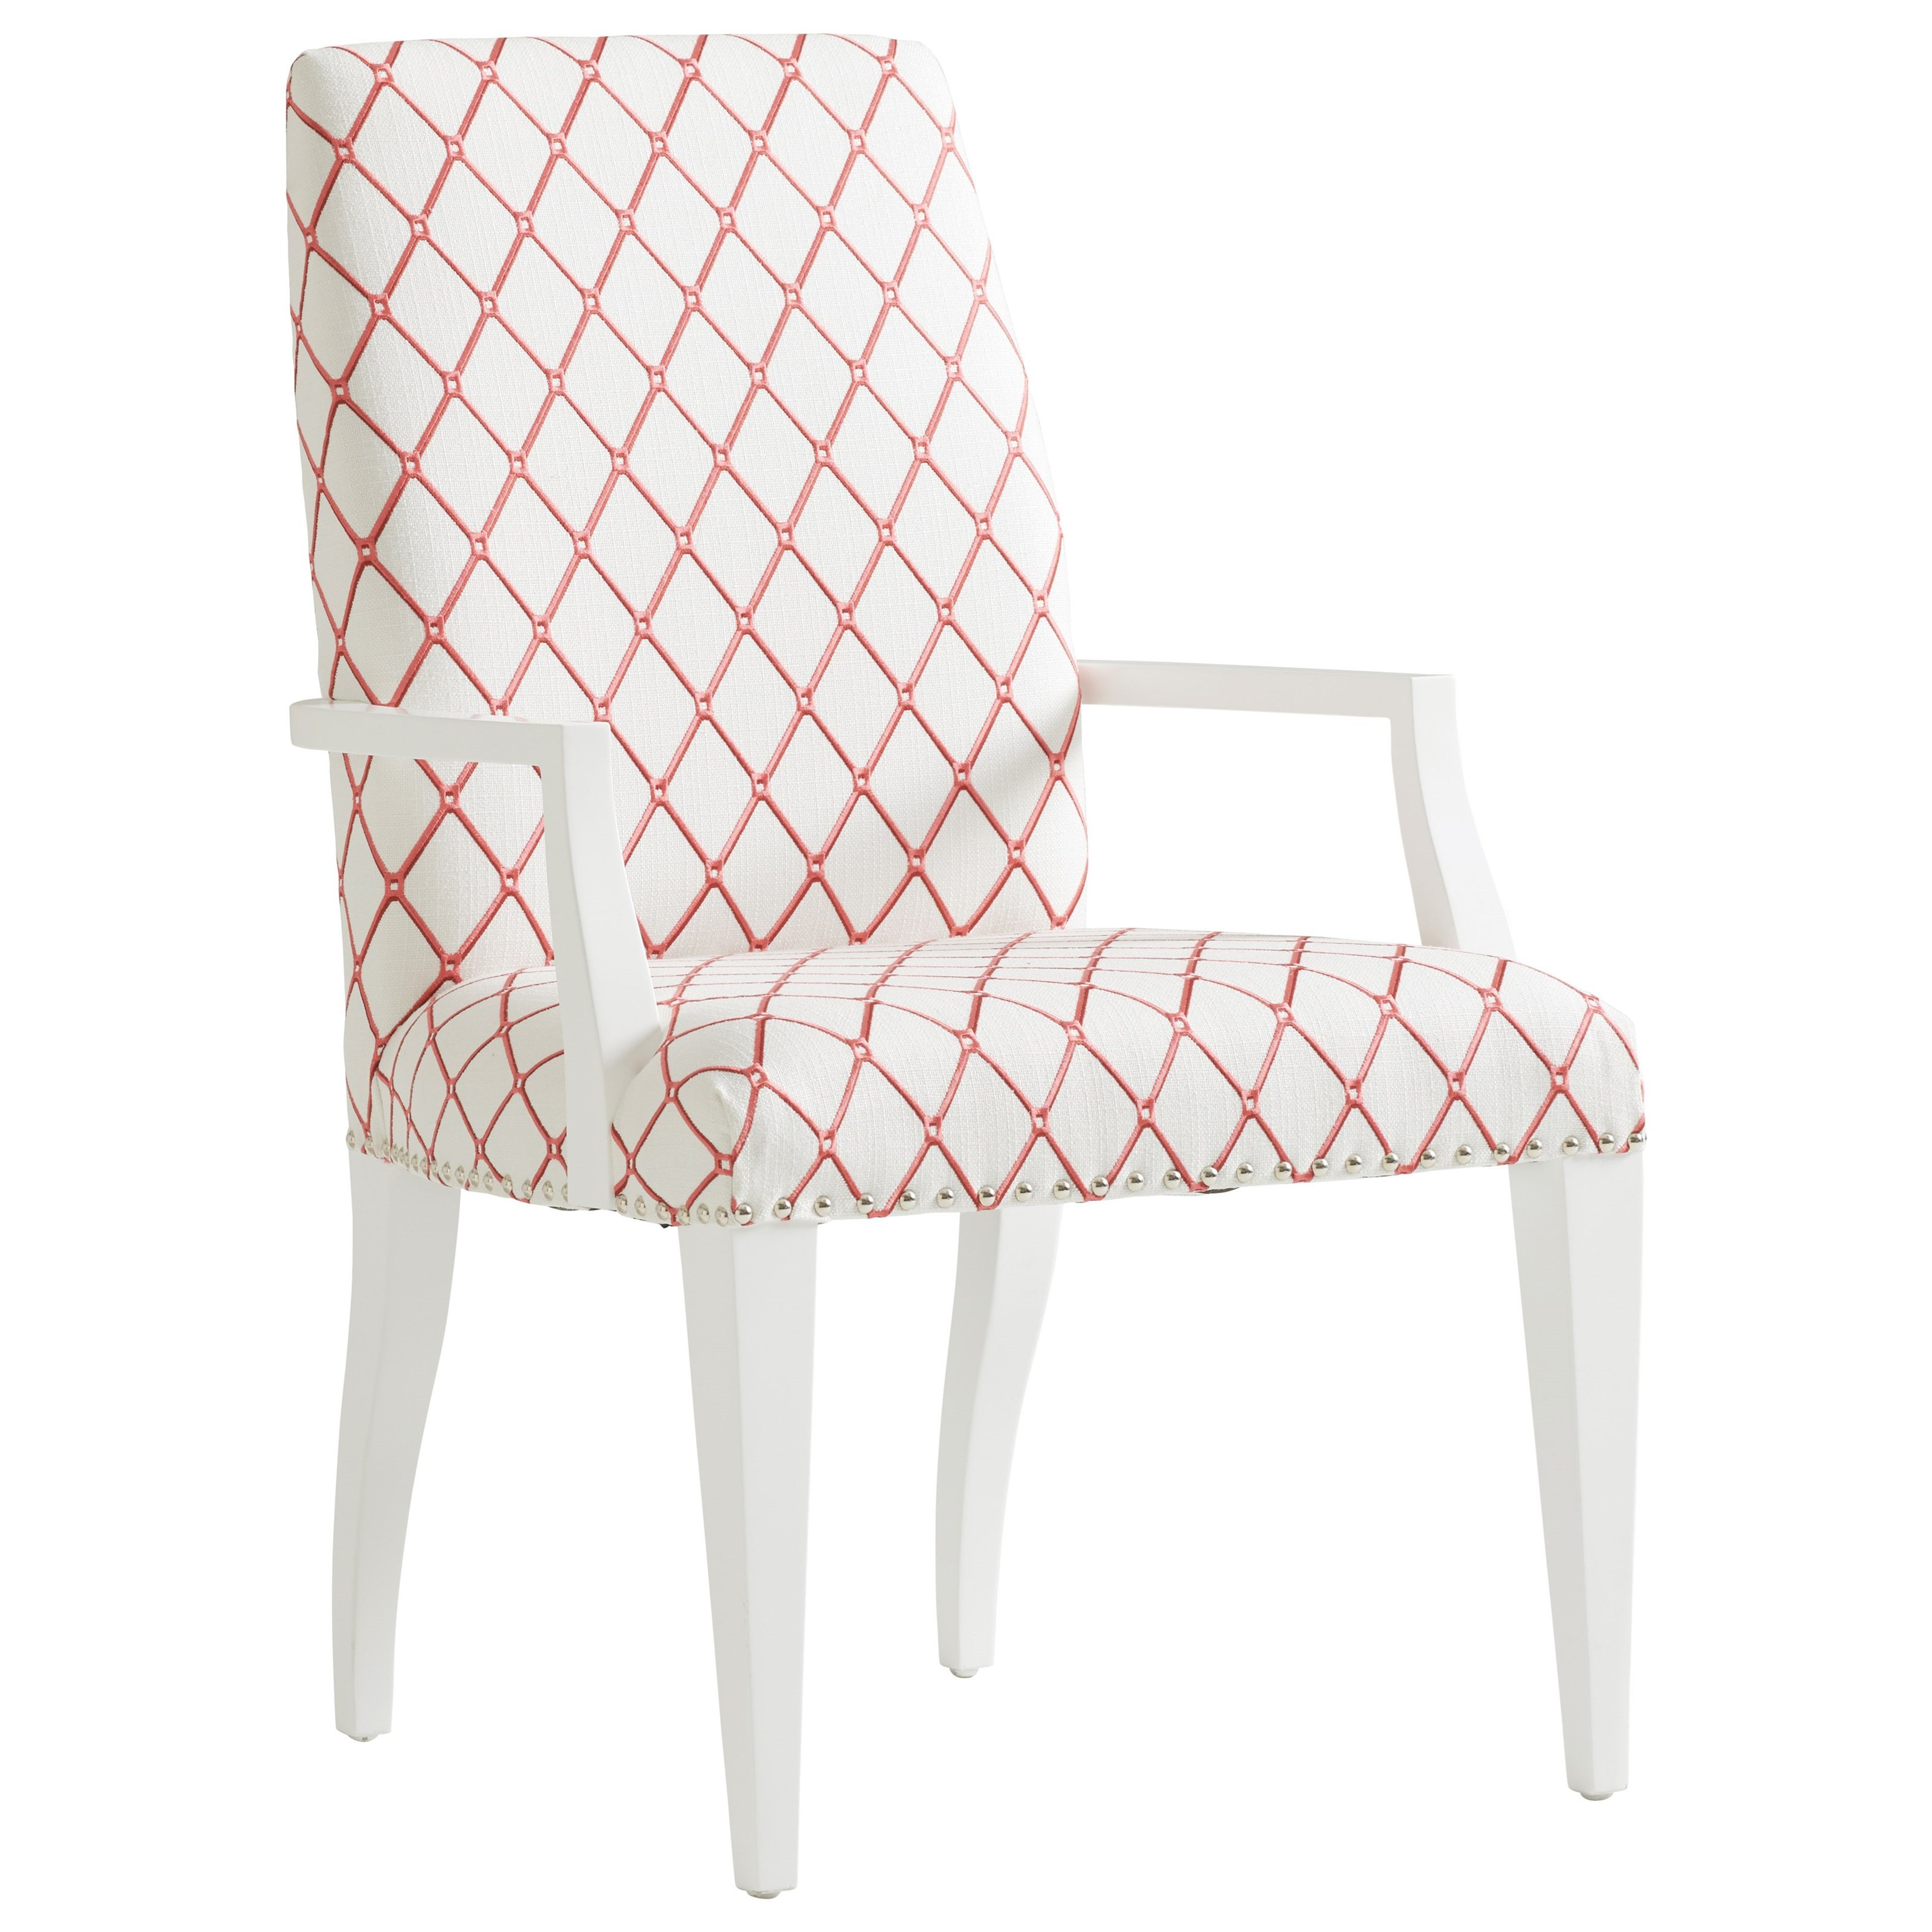 Avondale Darien Upholstered Arm Chair - Custom by Lexington at Johnny Janosik